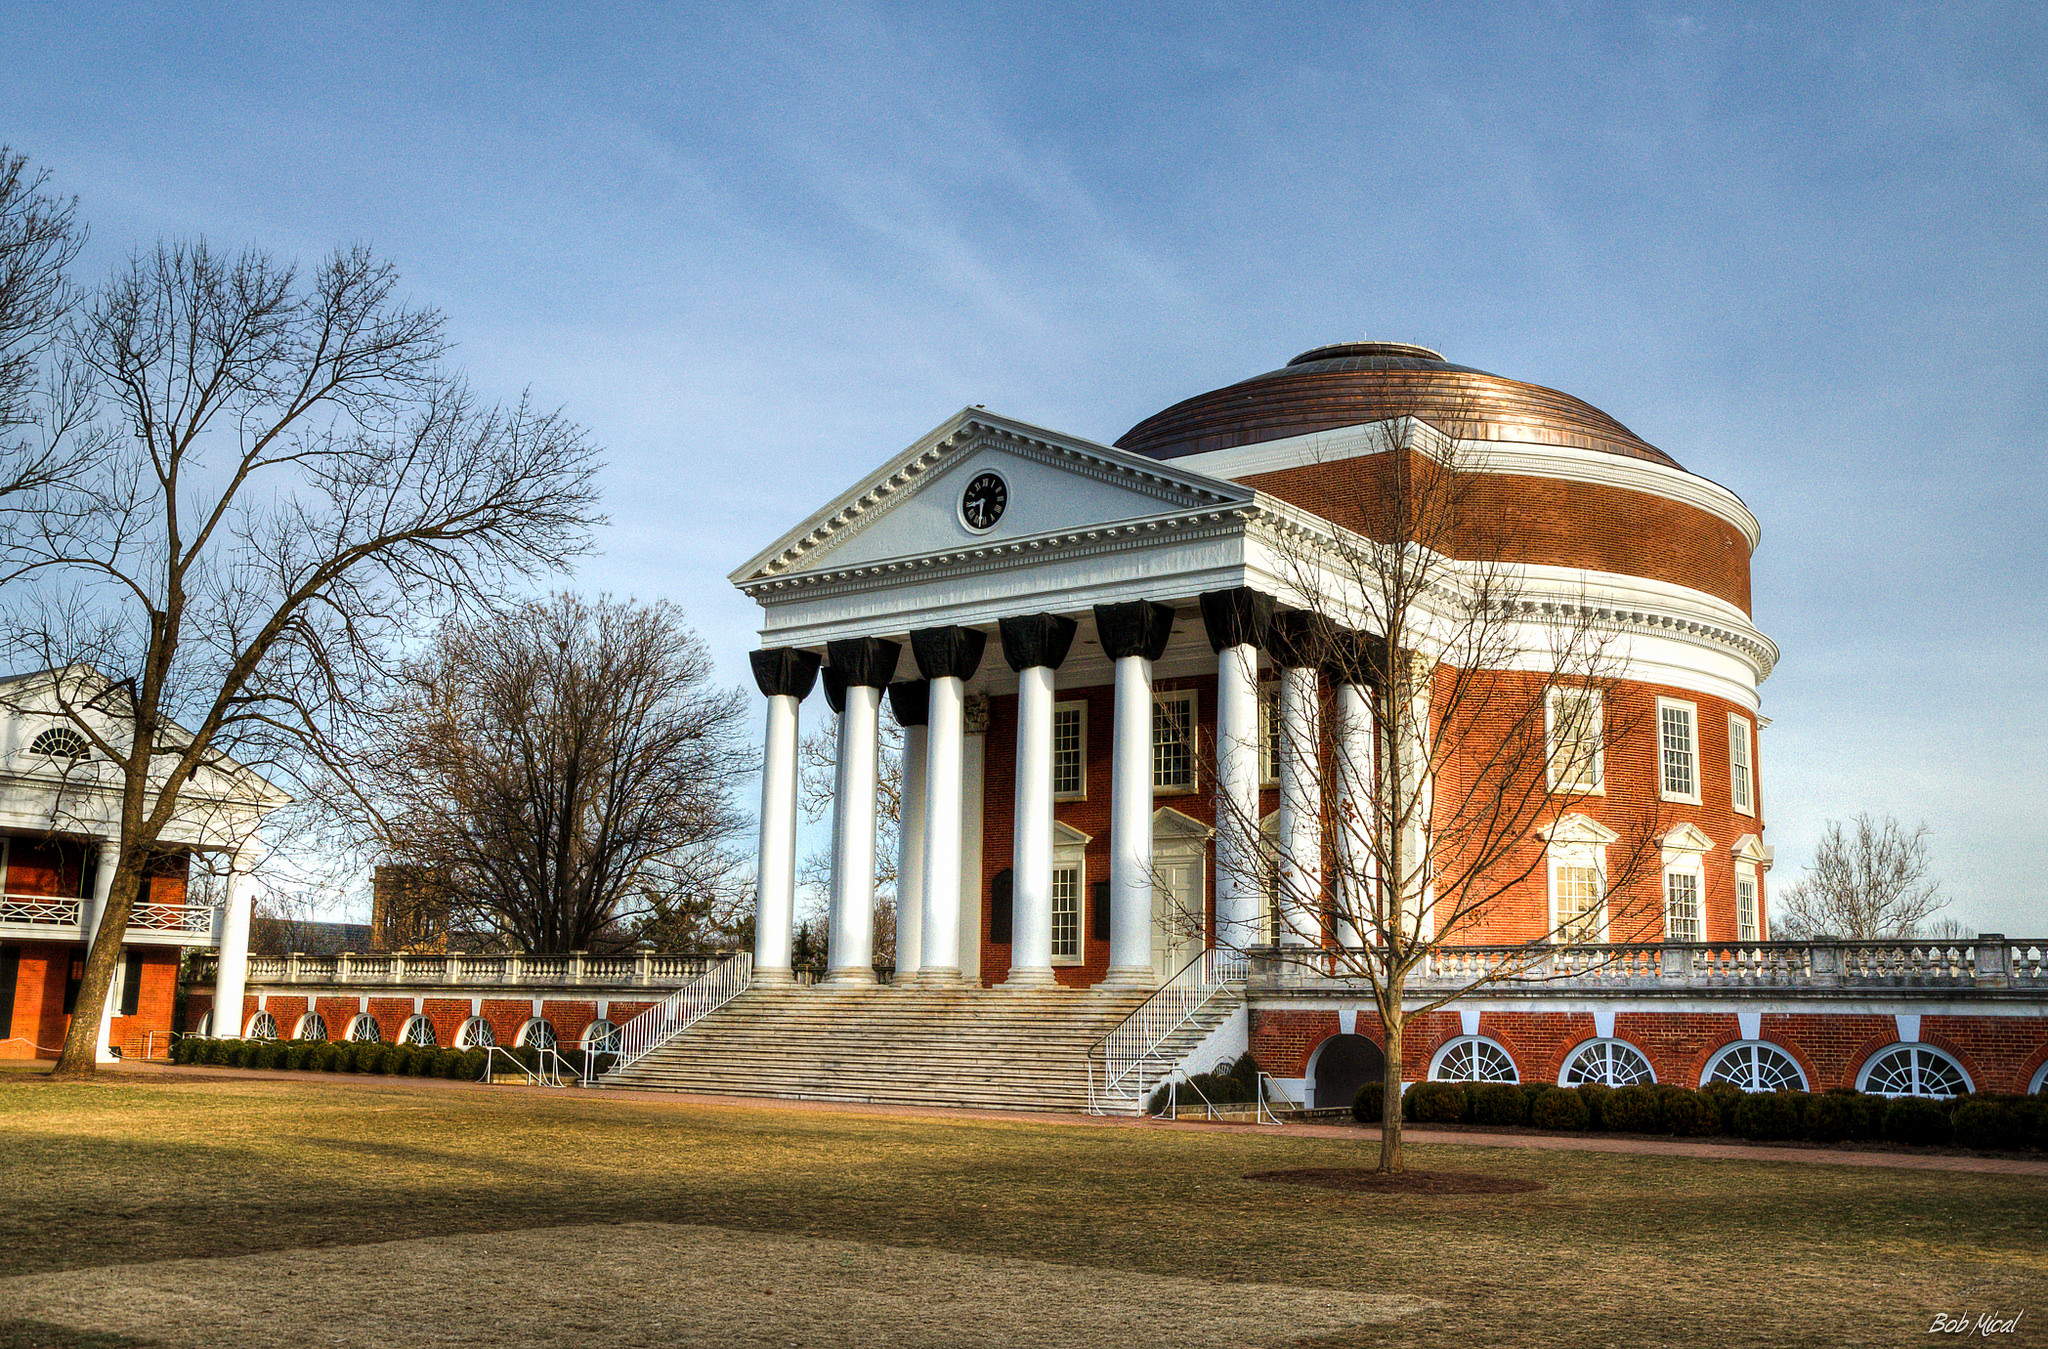 Universities In Charlotte Nc >> 16 Historic Towns In Virginia That Transport You To The Past